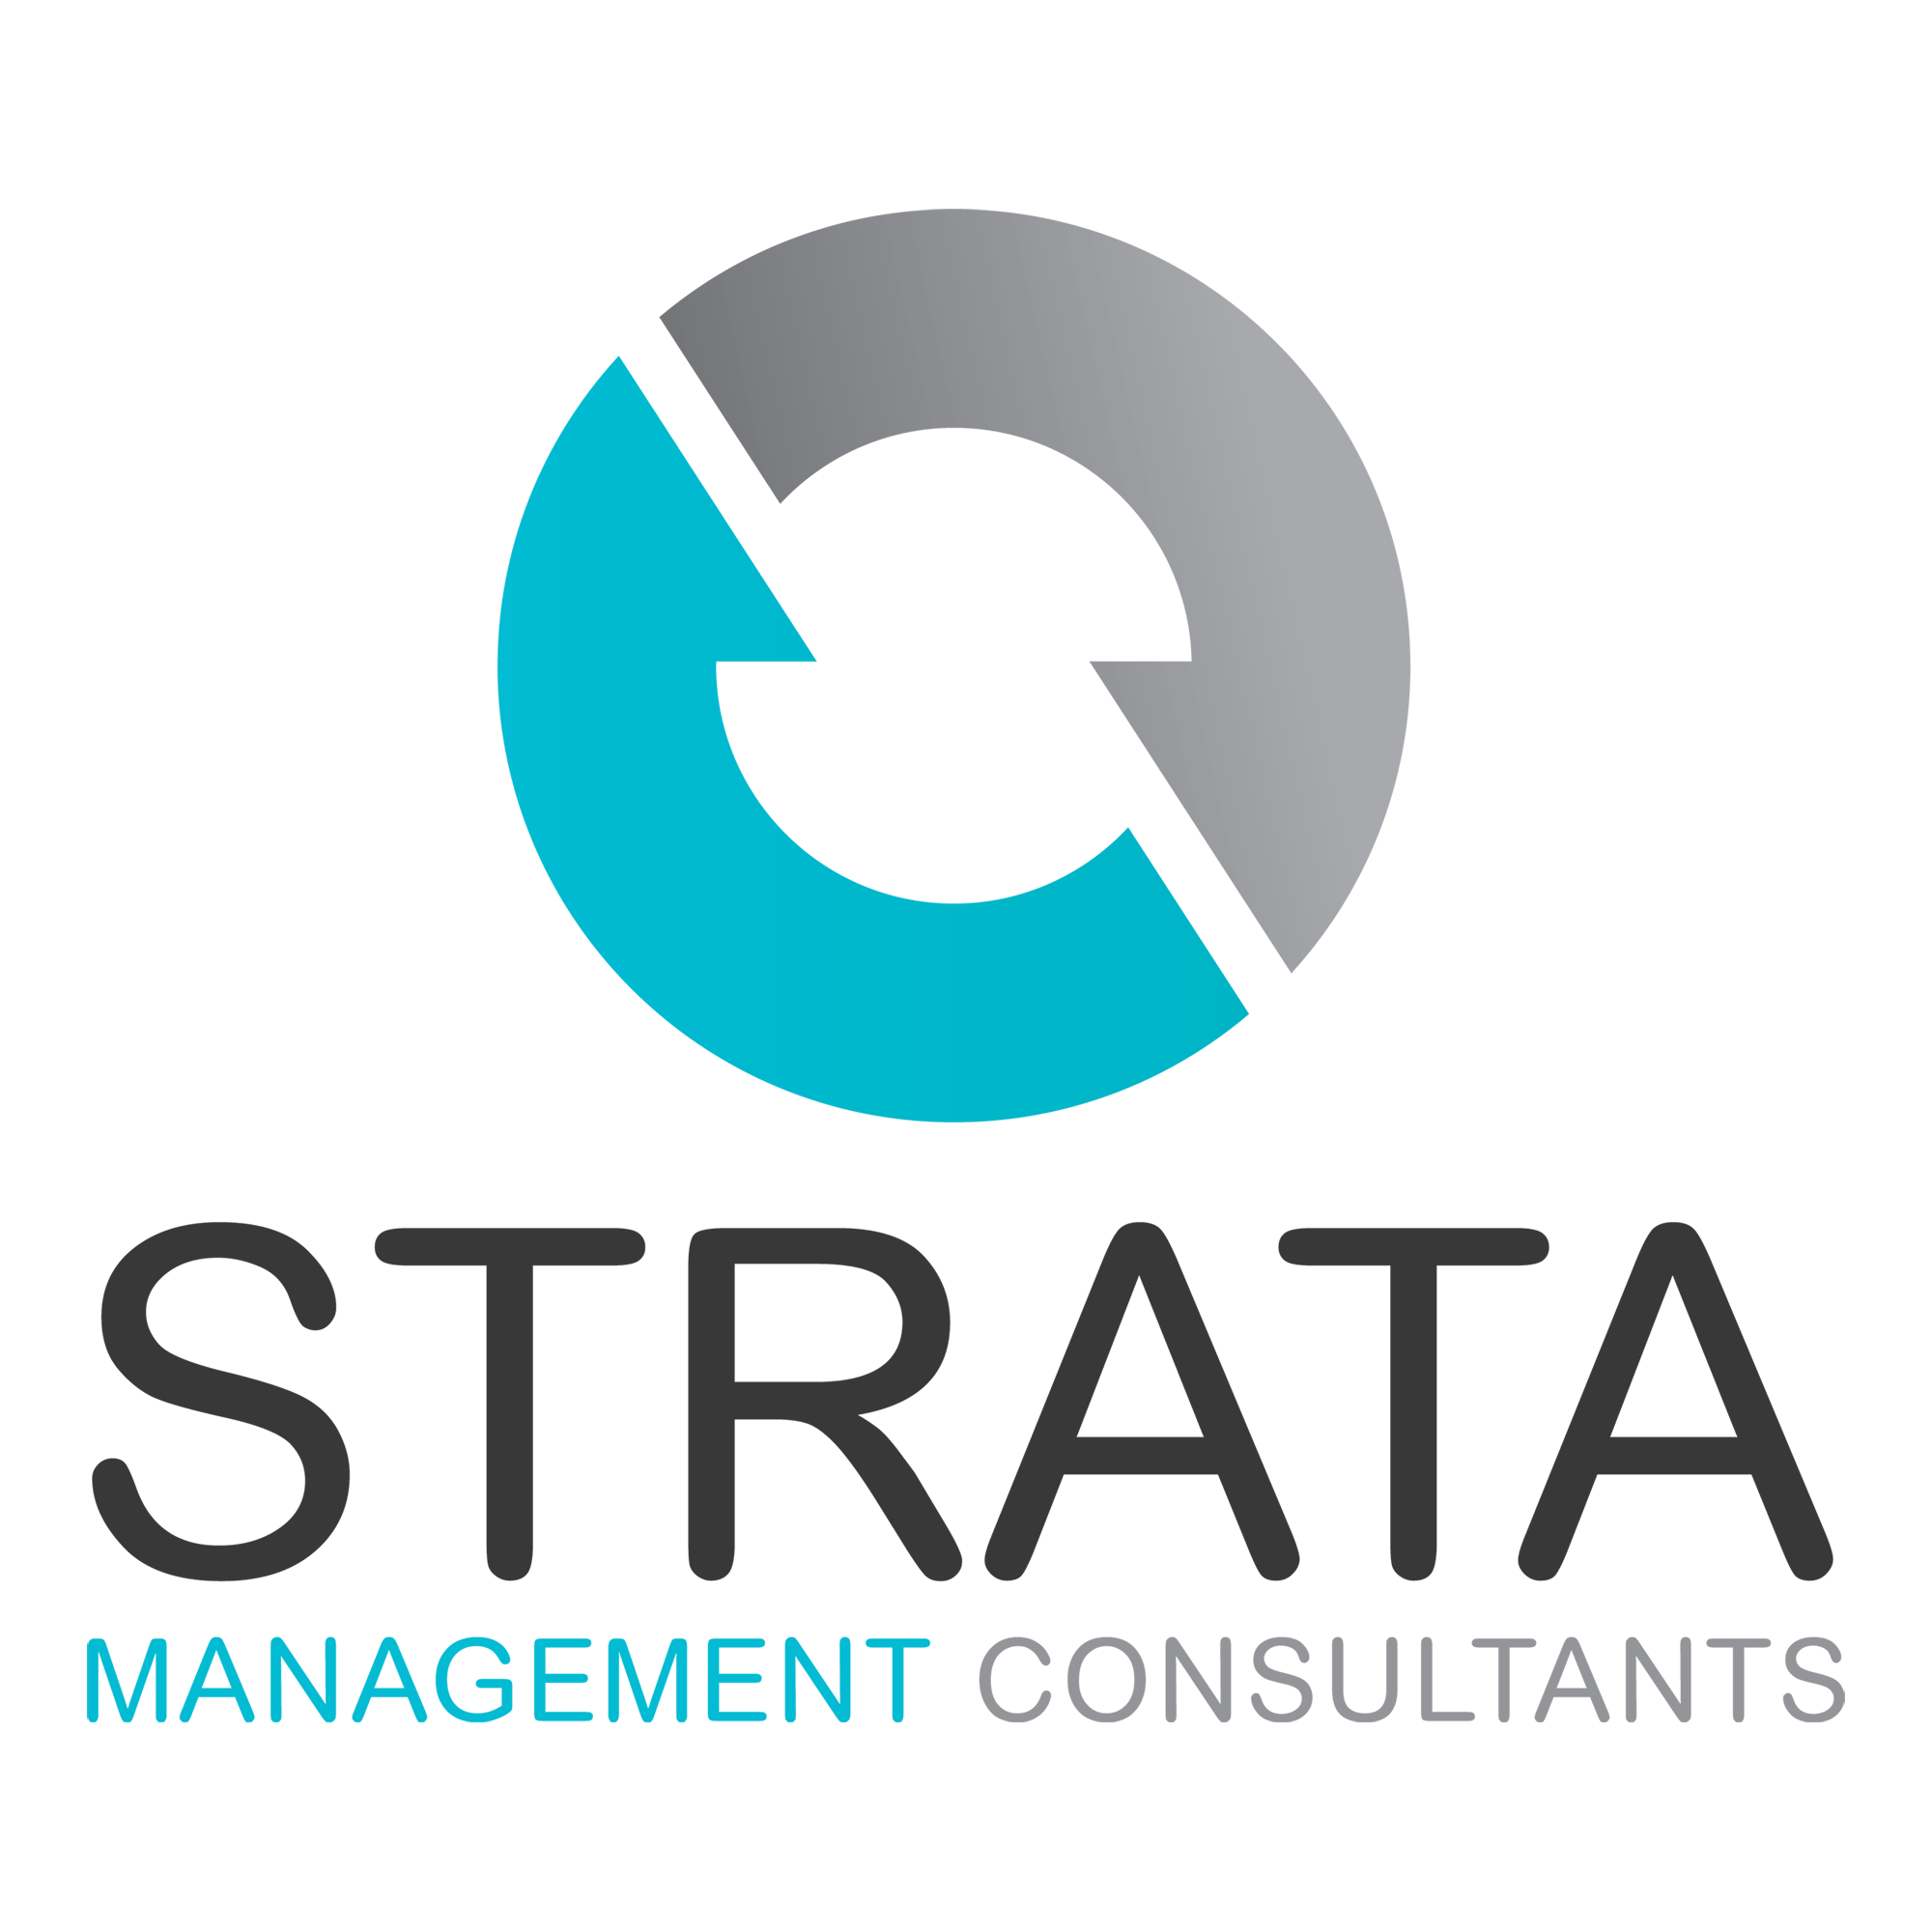 Update from Strata Management Consultants Melbourne